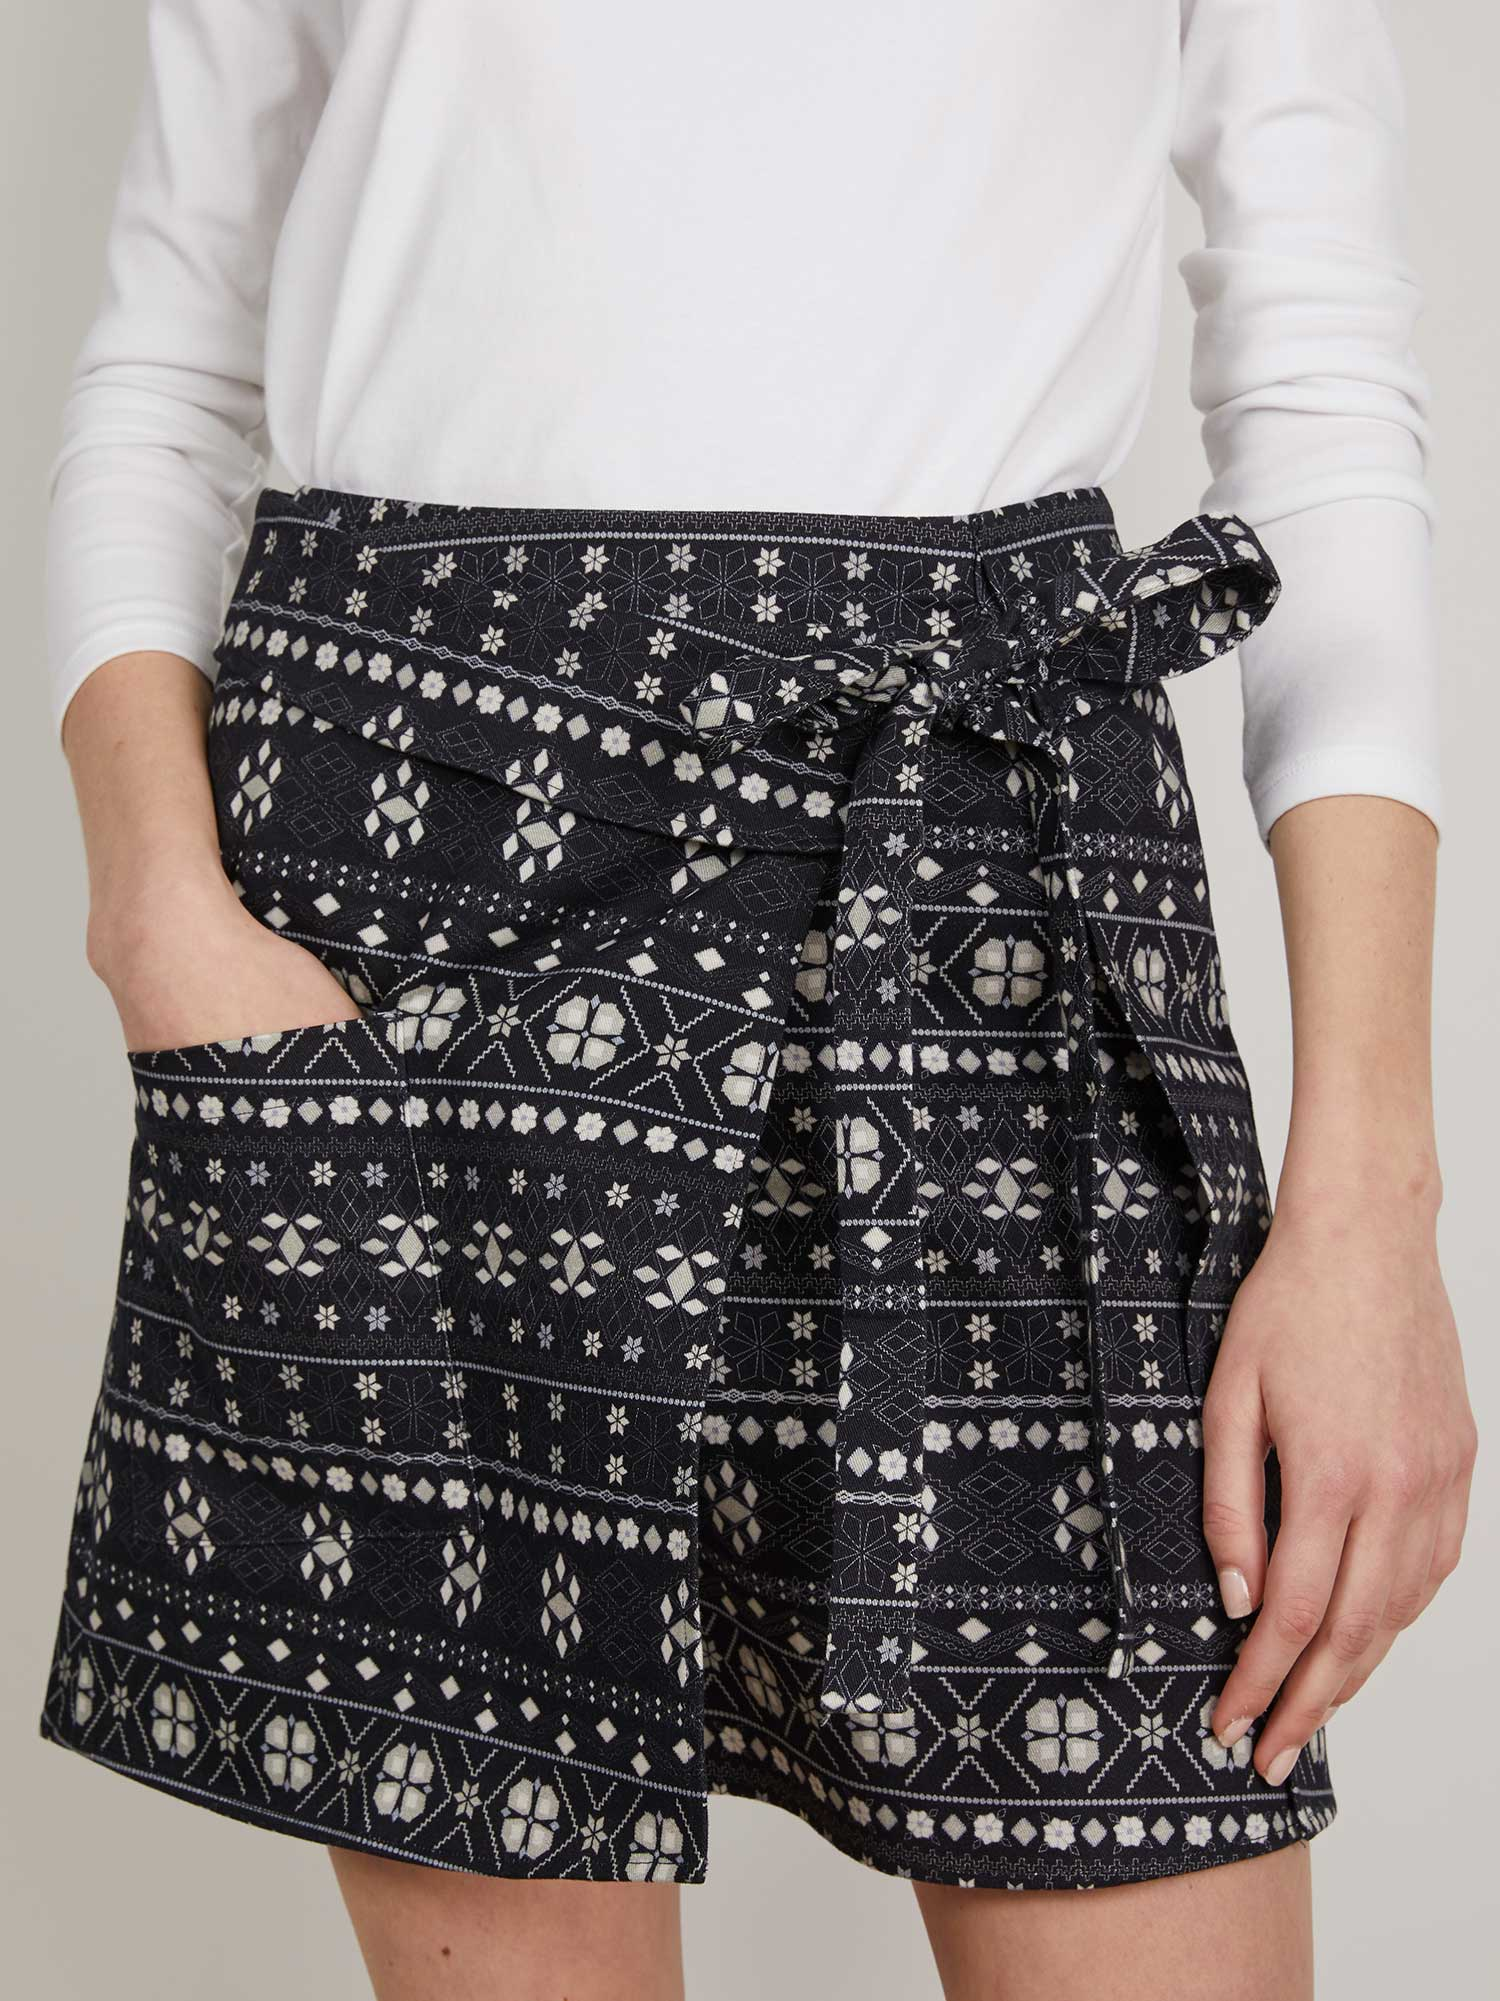 The KIT Wrap Kilt Skirt Navy Fair Isle Brushed Cotton Bold Prints Skirt THE KIT's Wrap Kilt Skirt is a mid-thigh heavy-brushed cotton skirt has a side-front waist tie and cargo pocket Batik Print Navy Blue